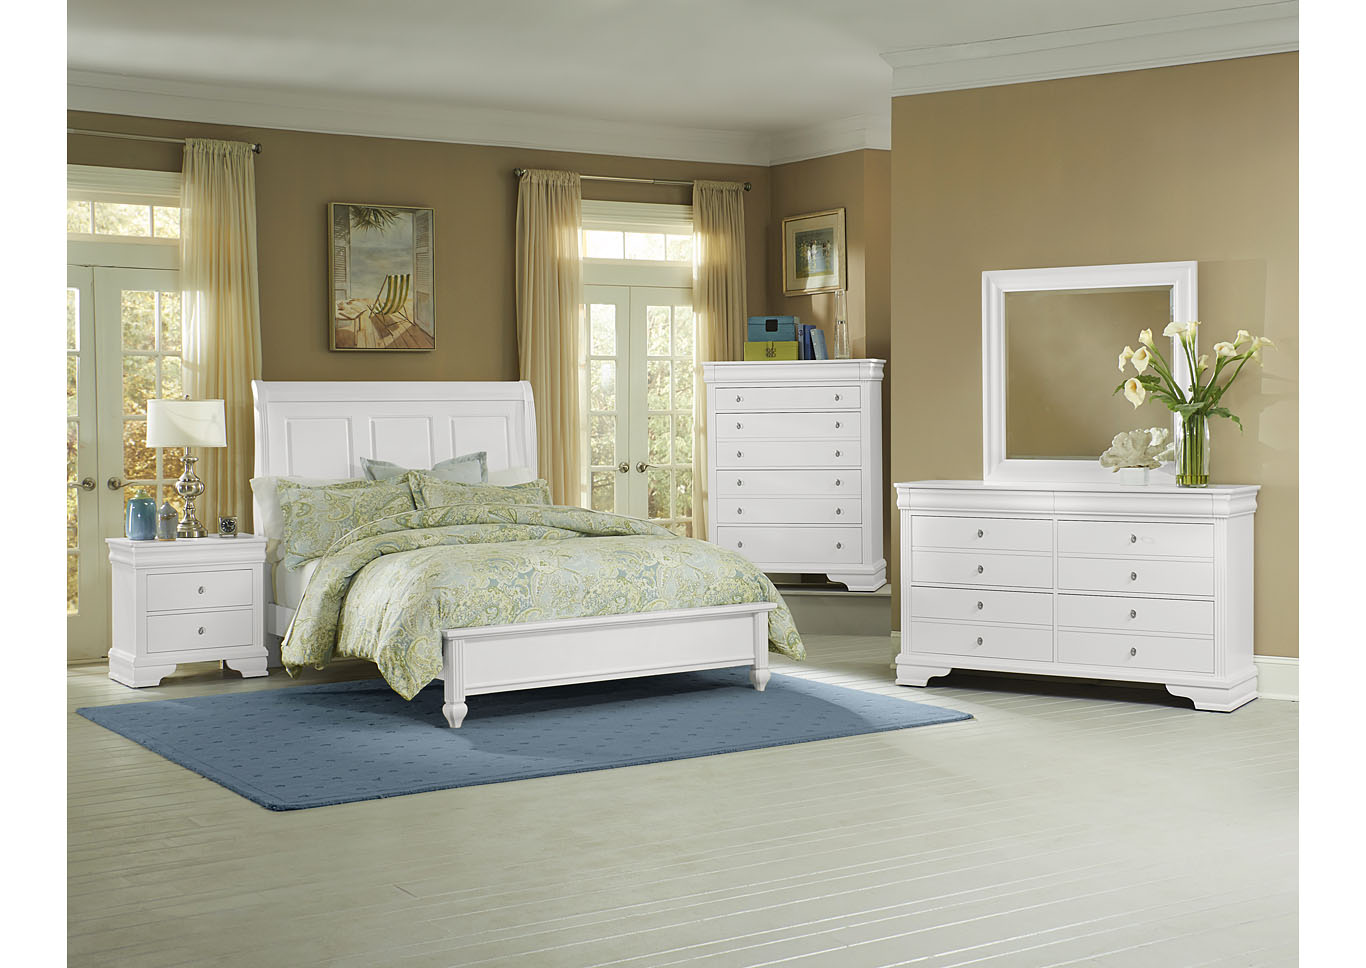 French Market Soft White King Sleigh Bed w/ Dresser, Mirror, Drawer Chest and Nightstand,Vaughan-Bassett